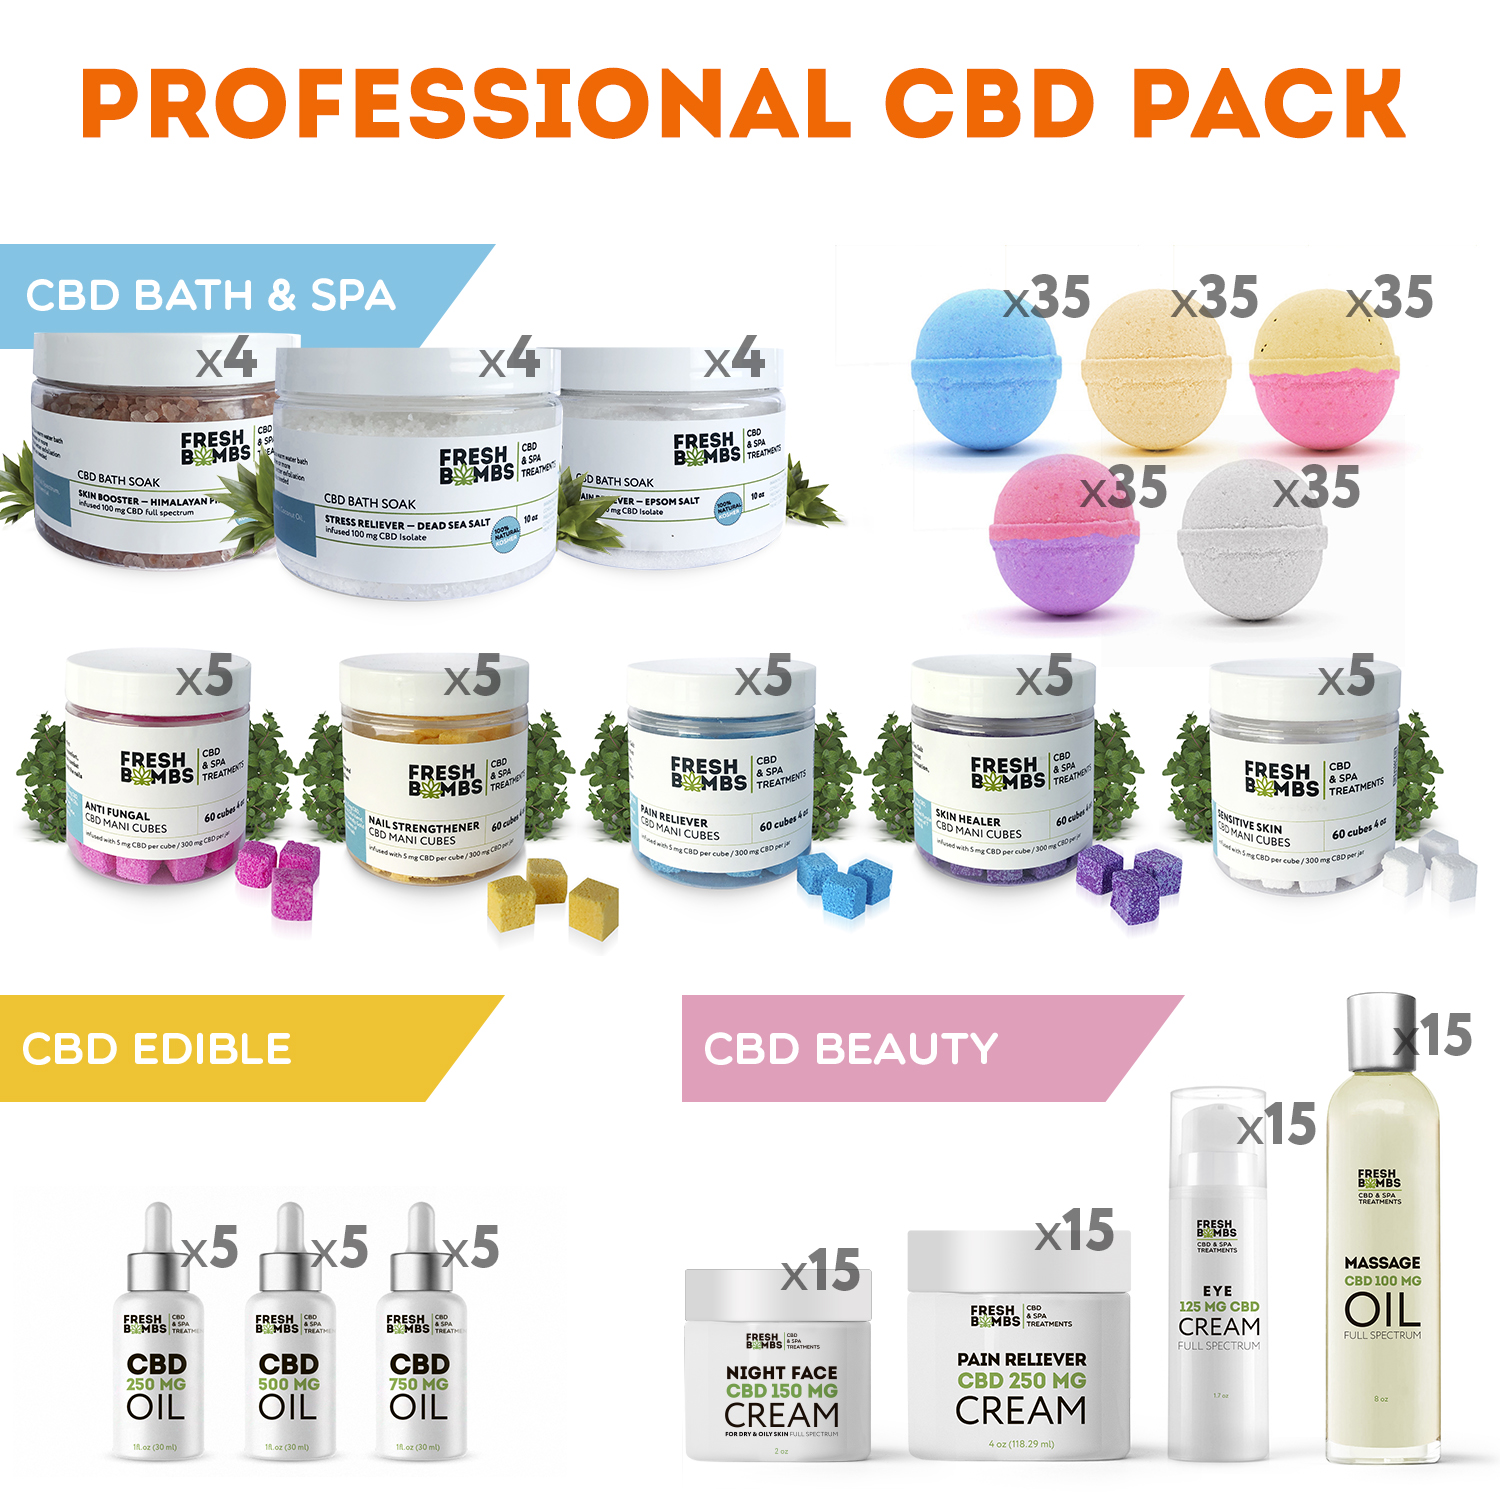 professional_pack_1500x1500